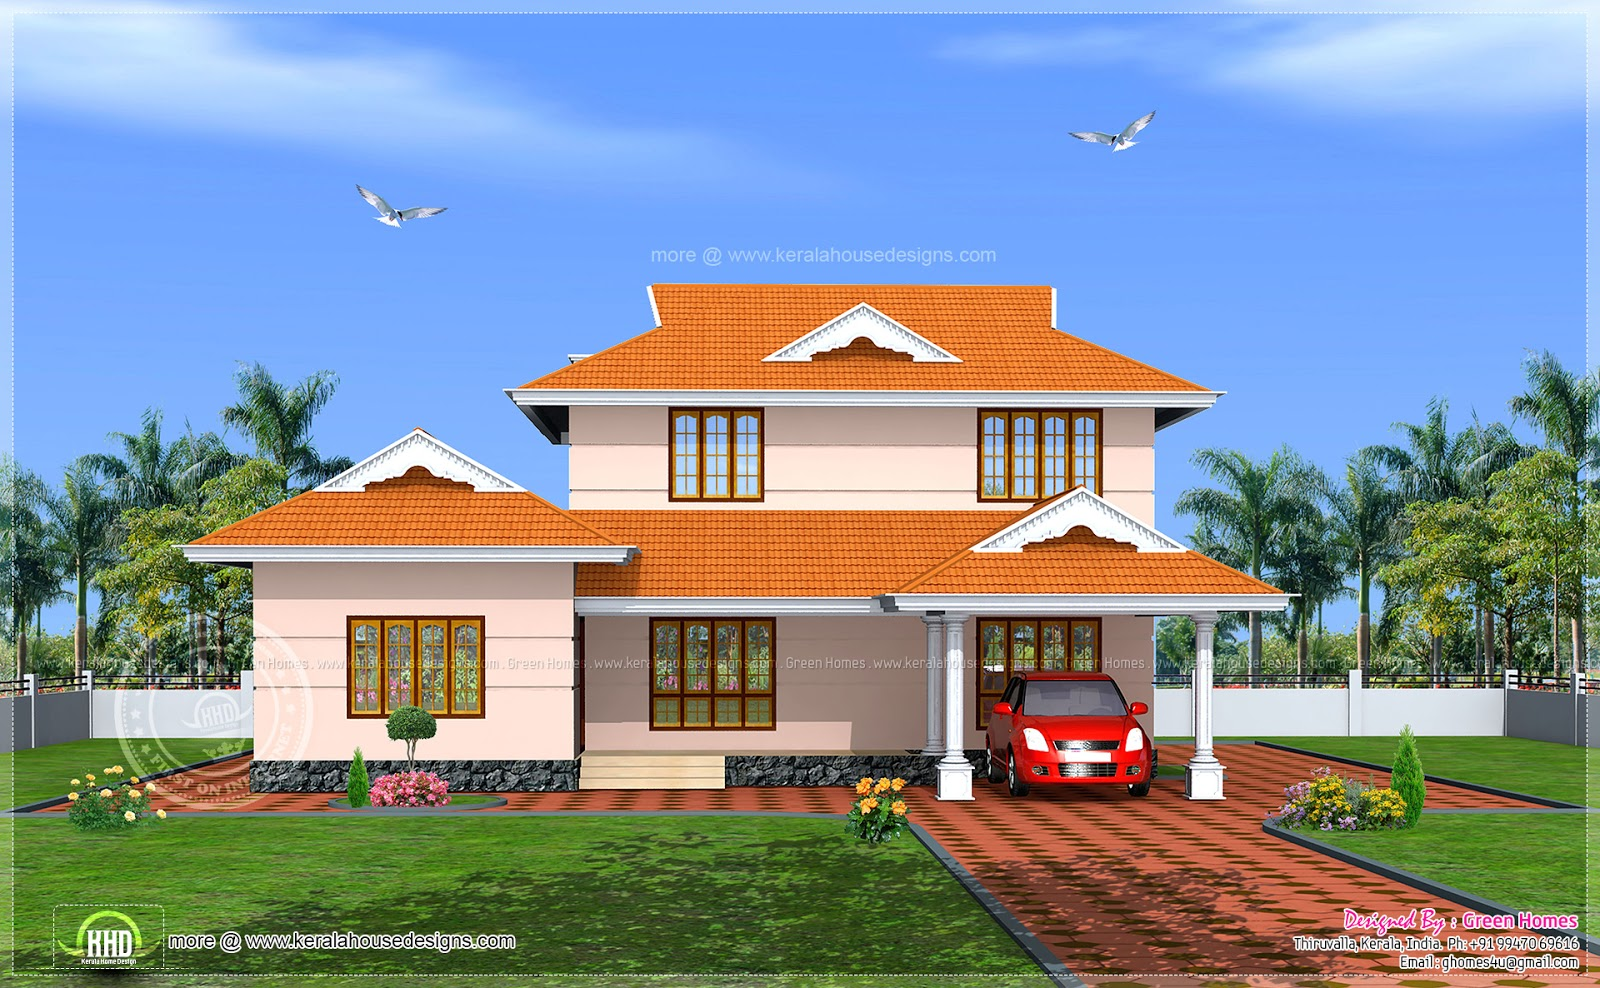 House plans and design house plans in kerala model with for Kerala house photos